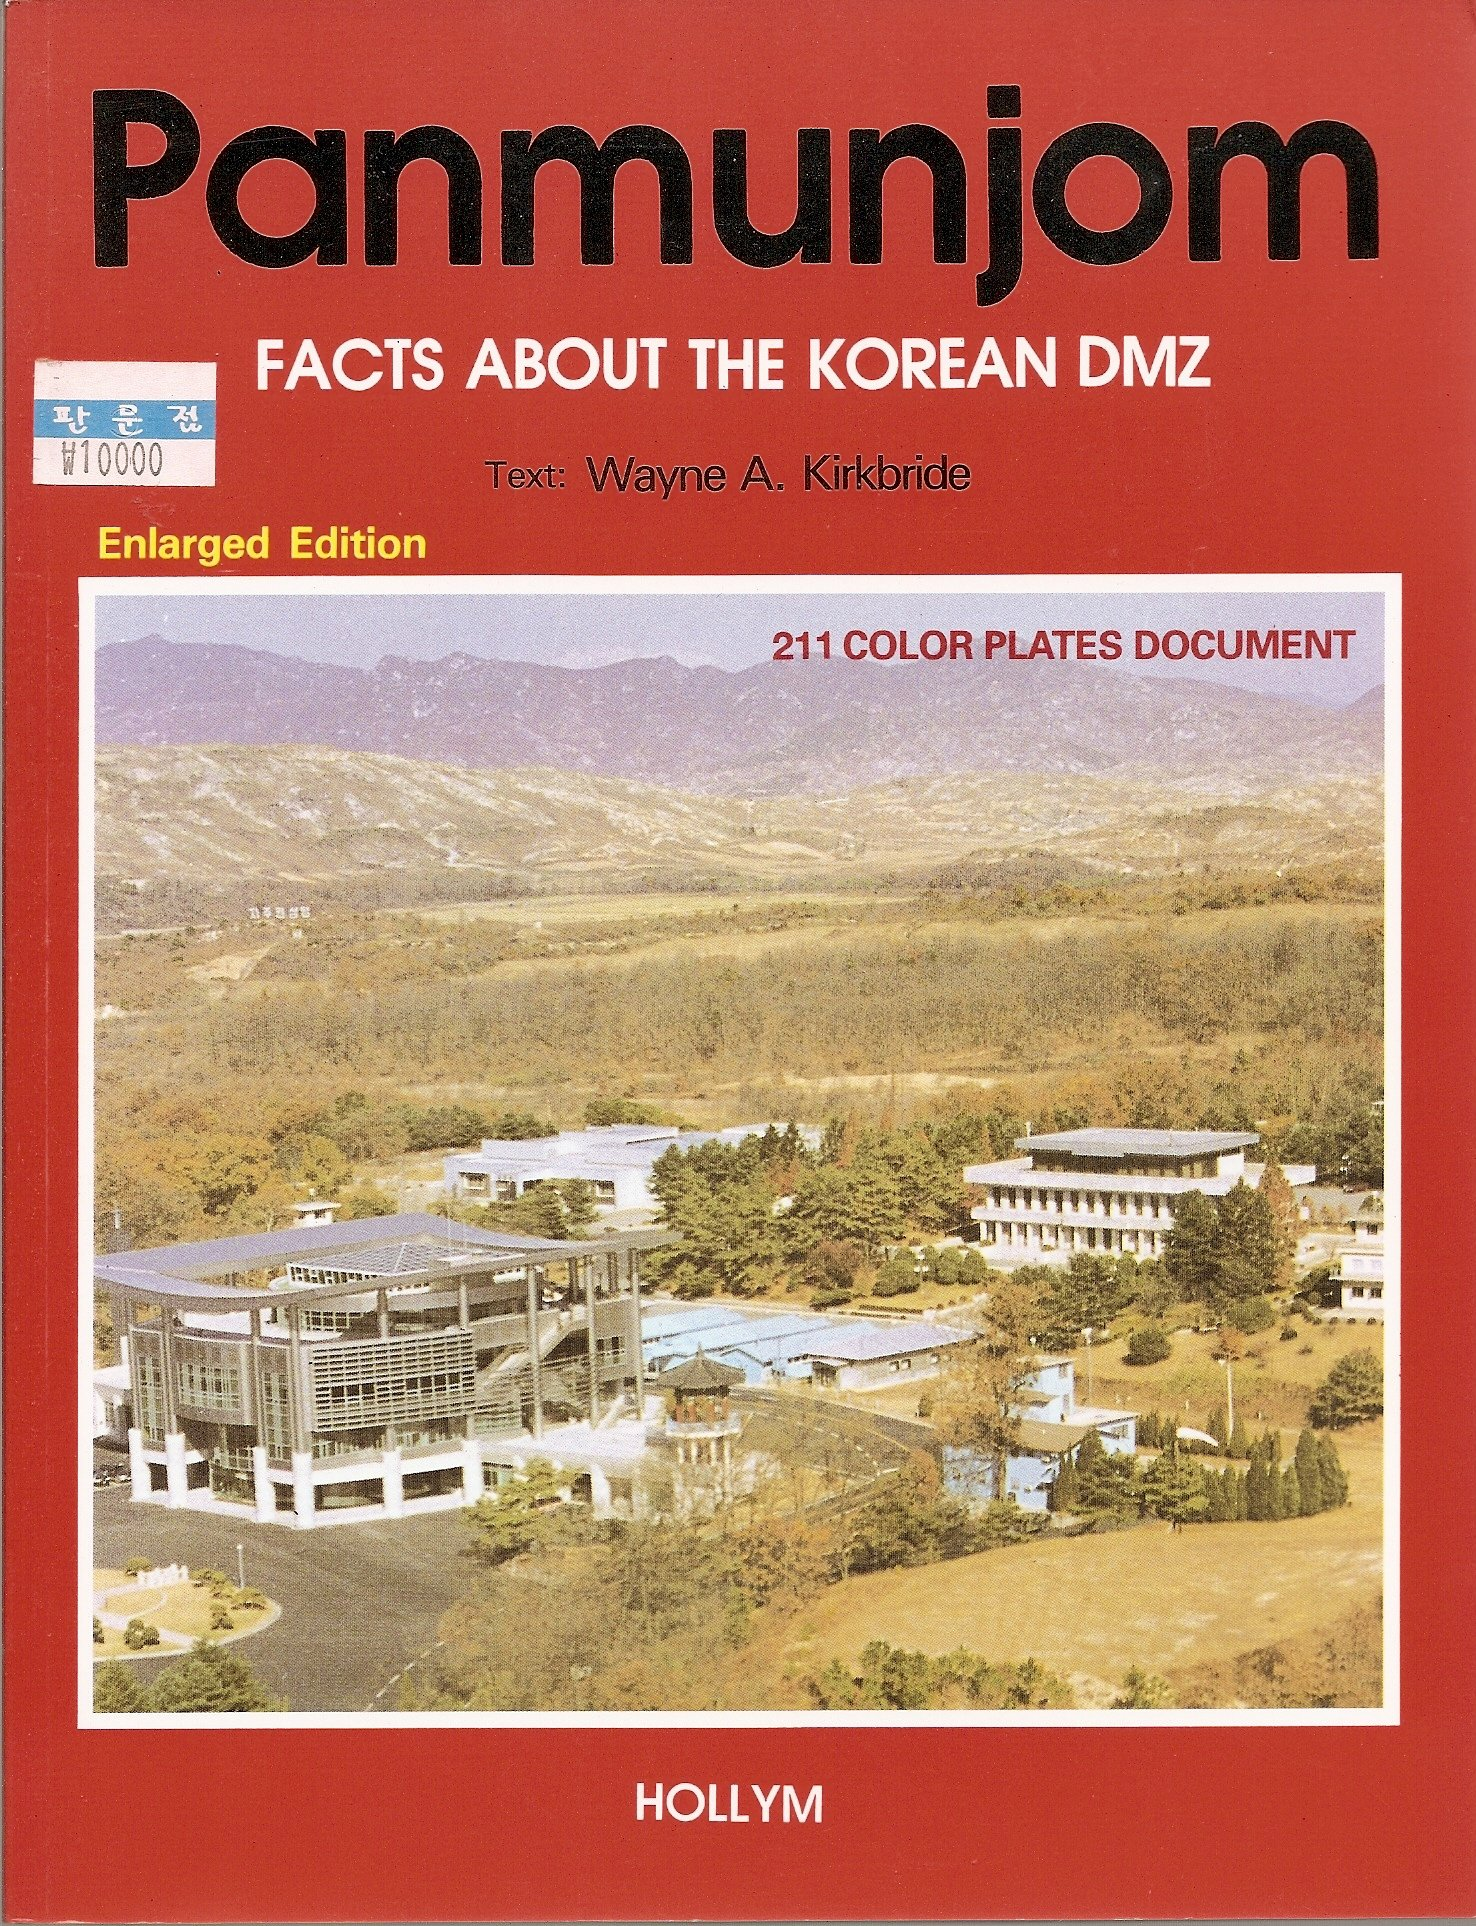 Panmunjom: Facts about the Korean DMZ, Wayne A Kirkbride